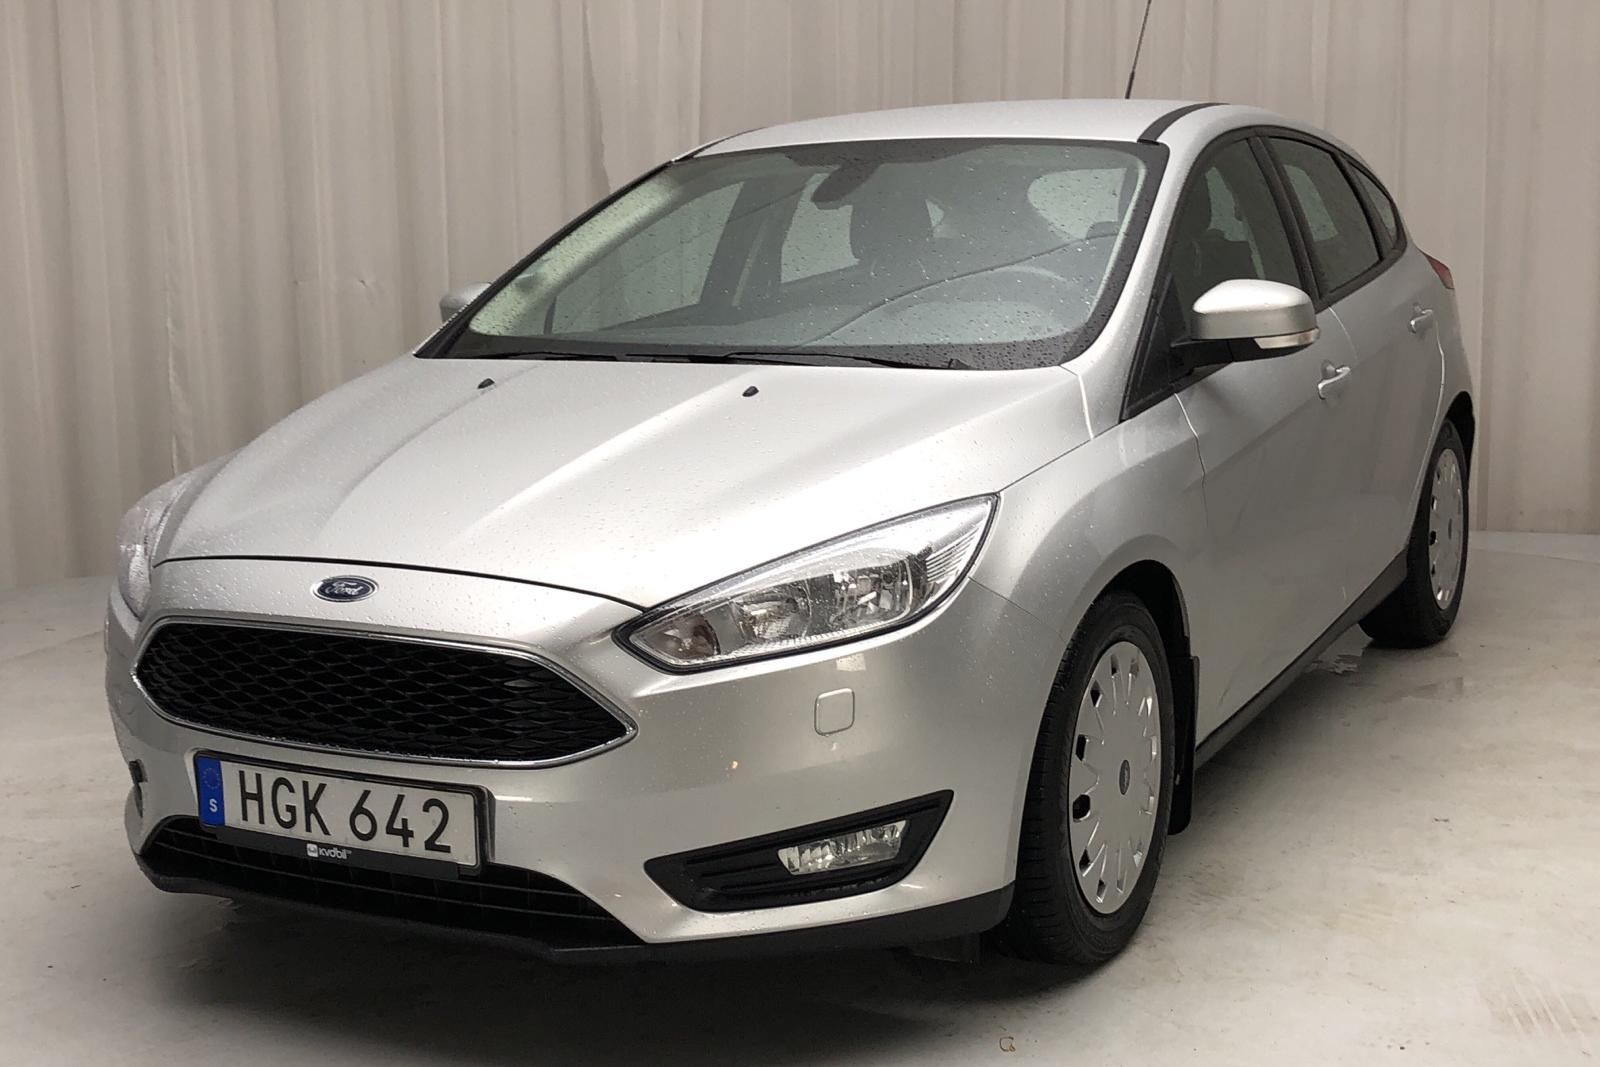 Ford Focus 1.5 TDCi ECOnetic 5dr (105hk)